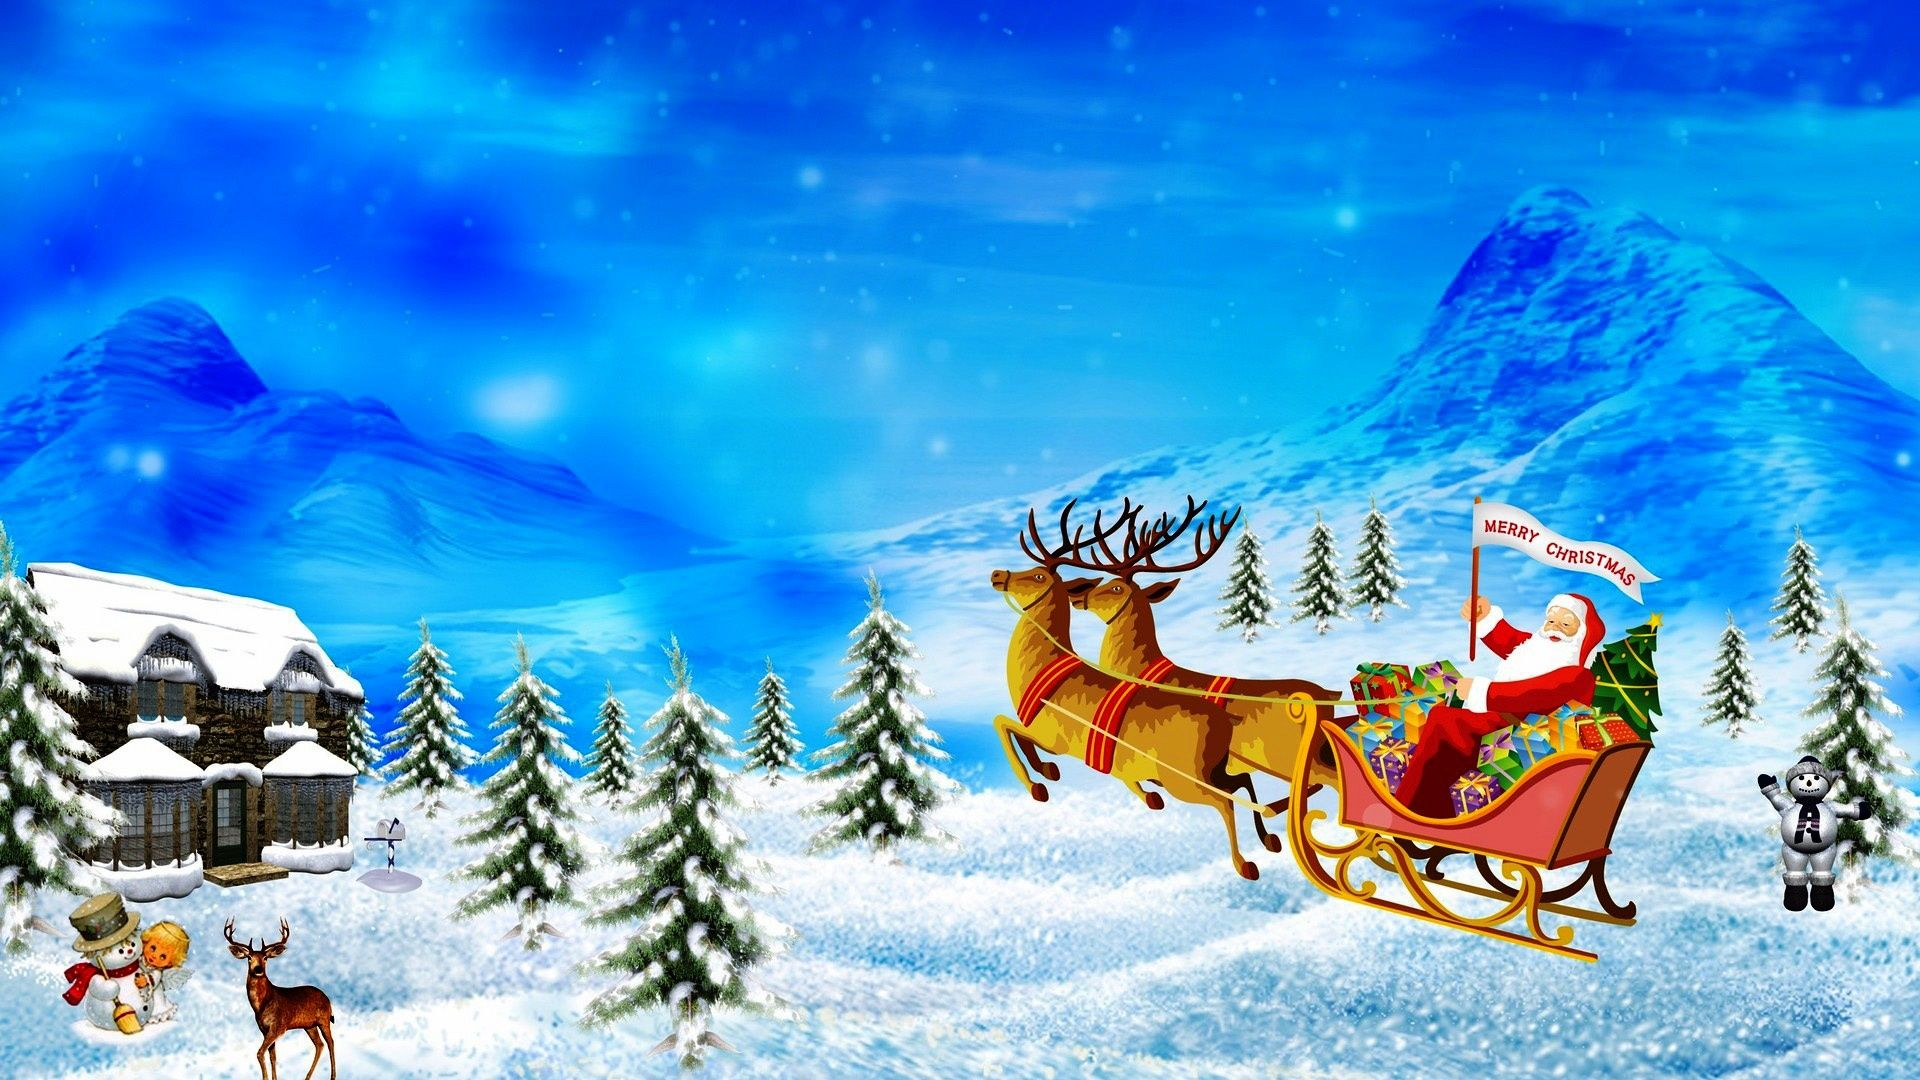 merry christmas wallpapers deer - hd desktop wallpapers | 4k hd